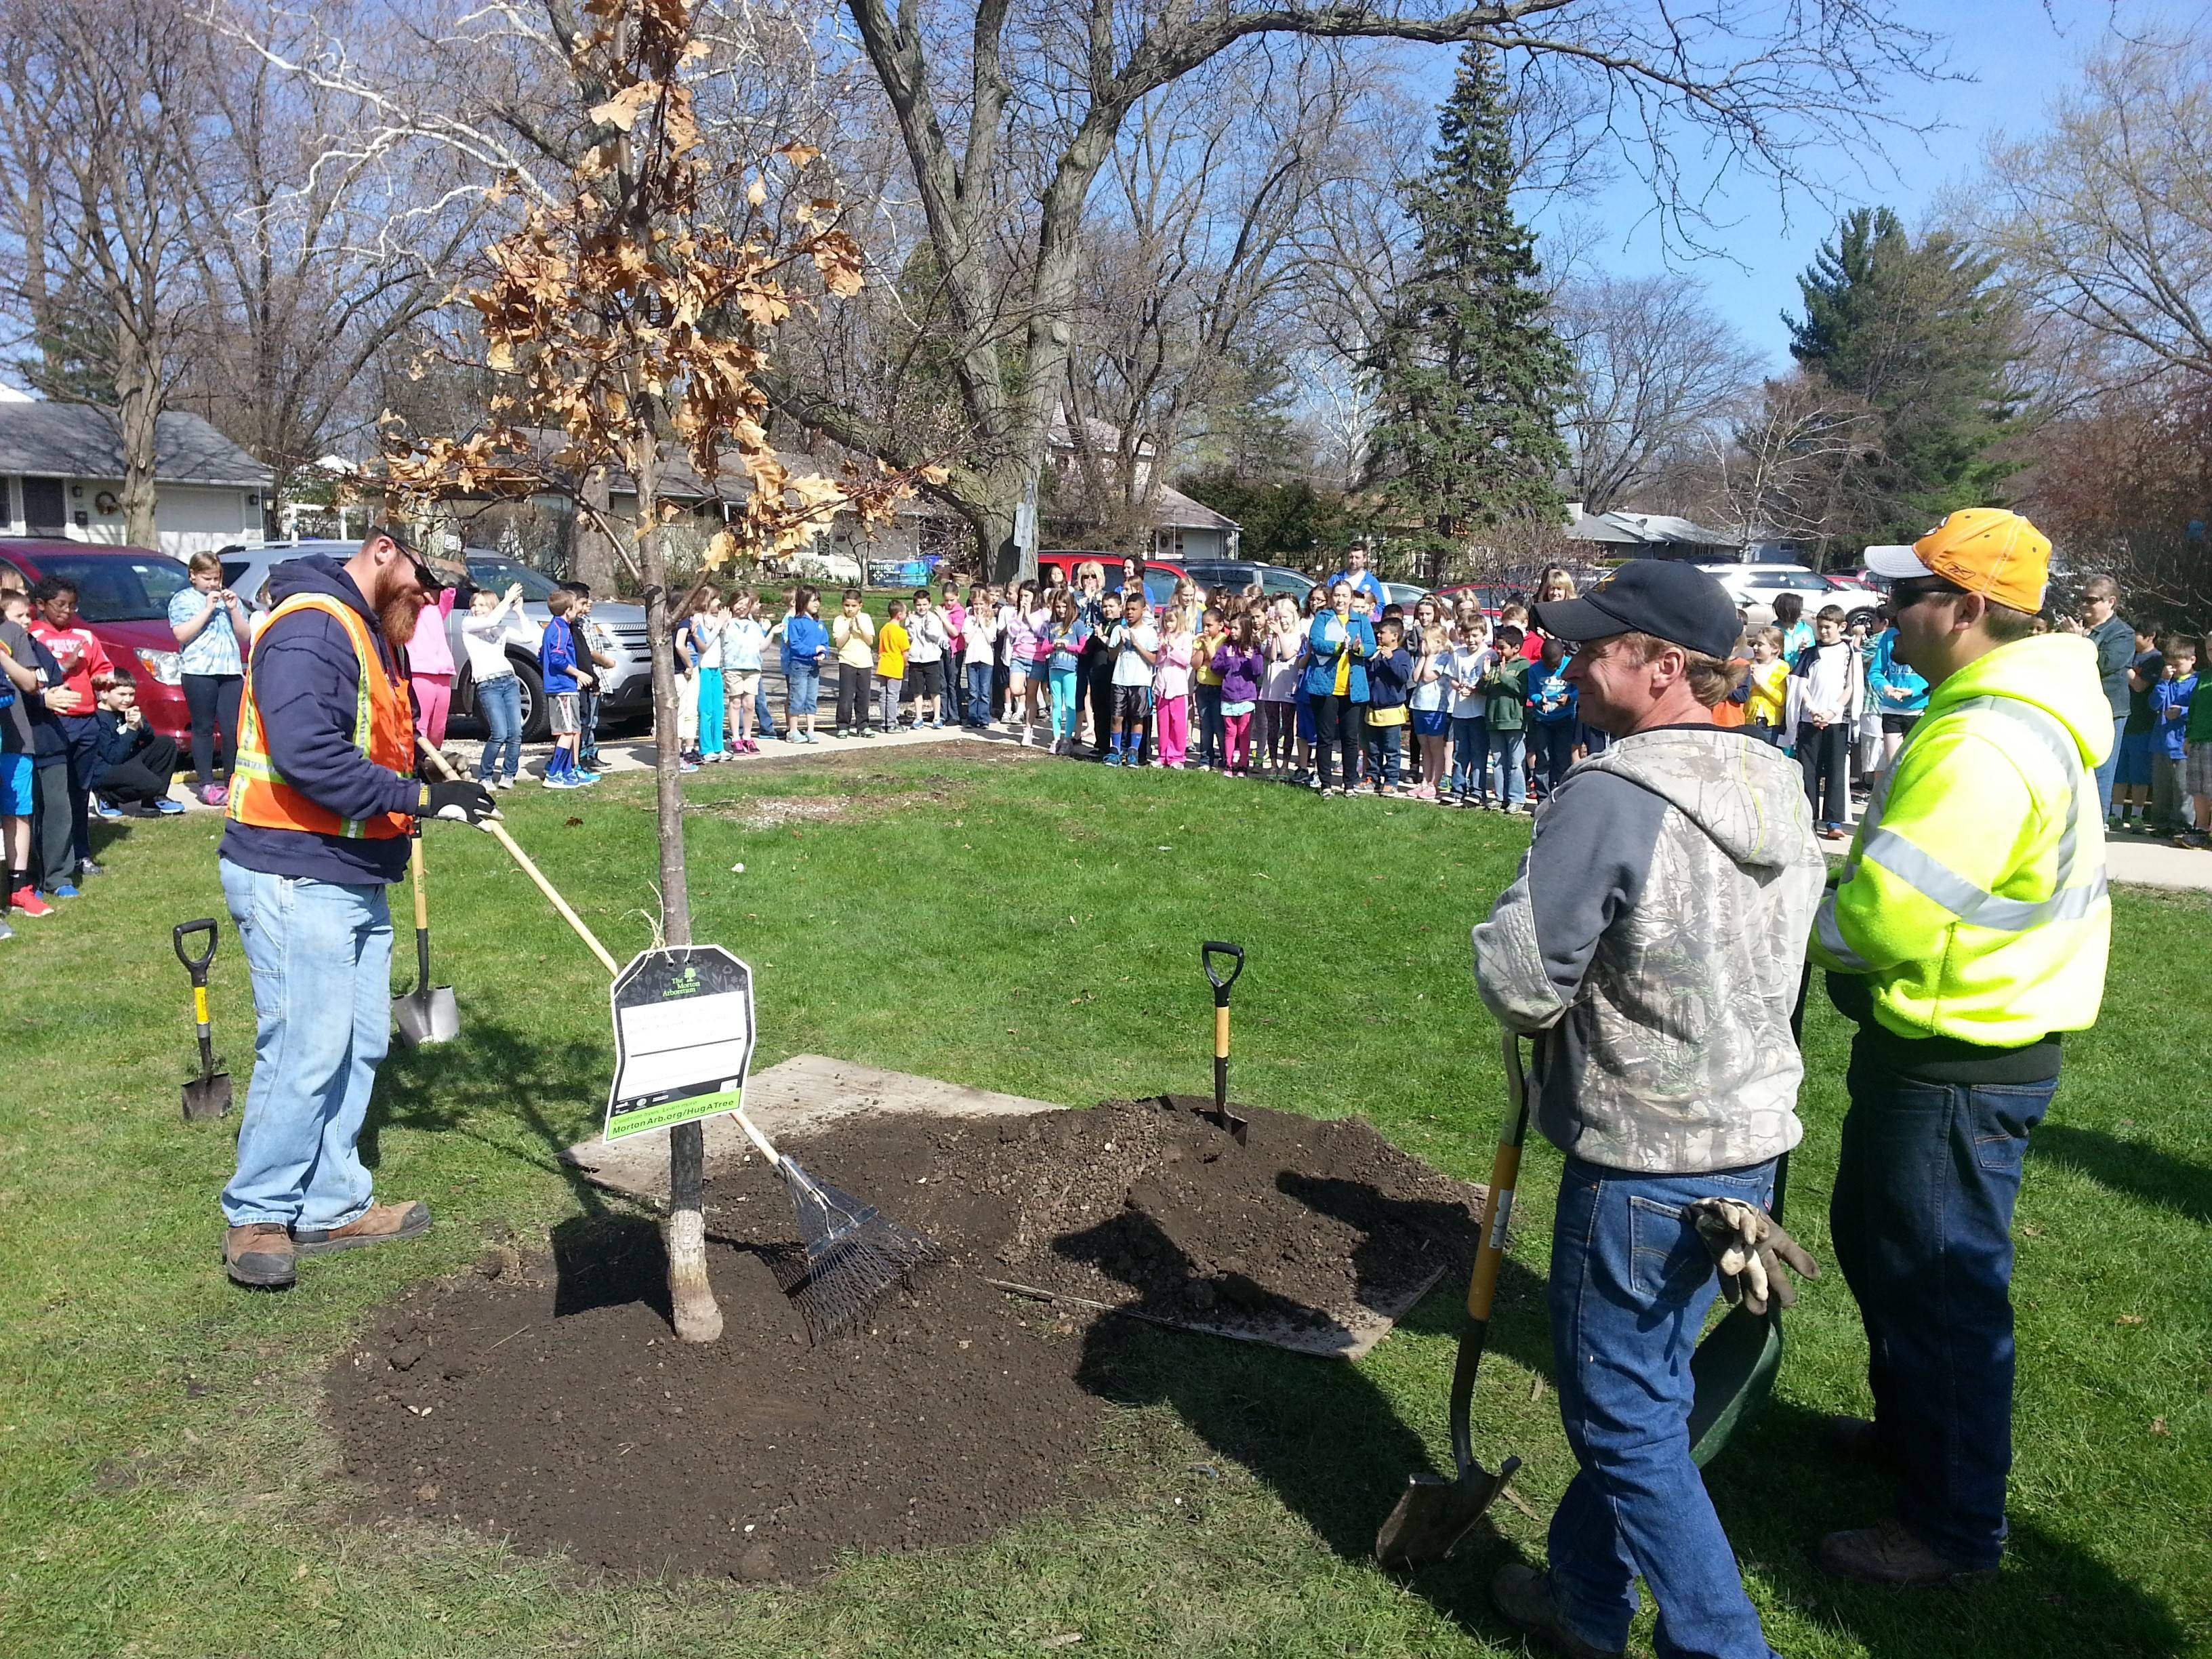 Workers from the Wheaton forestry division help plant a white oak tree at Emerson Elementary School in Wheaton Friday in celebration of Arbor Day.